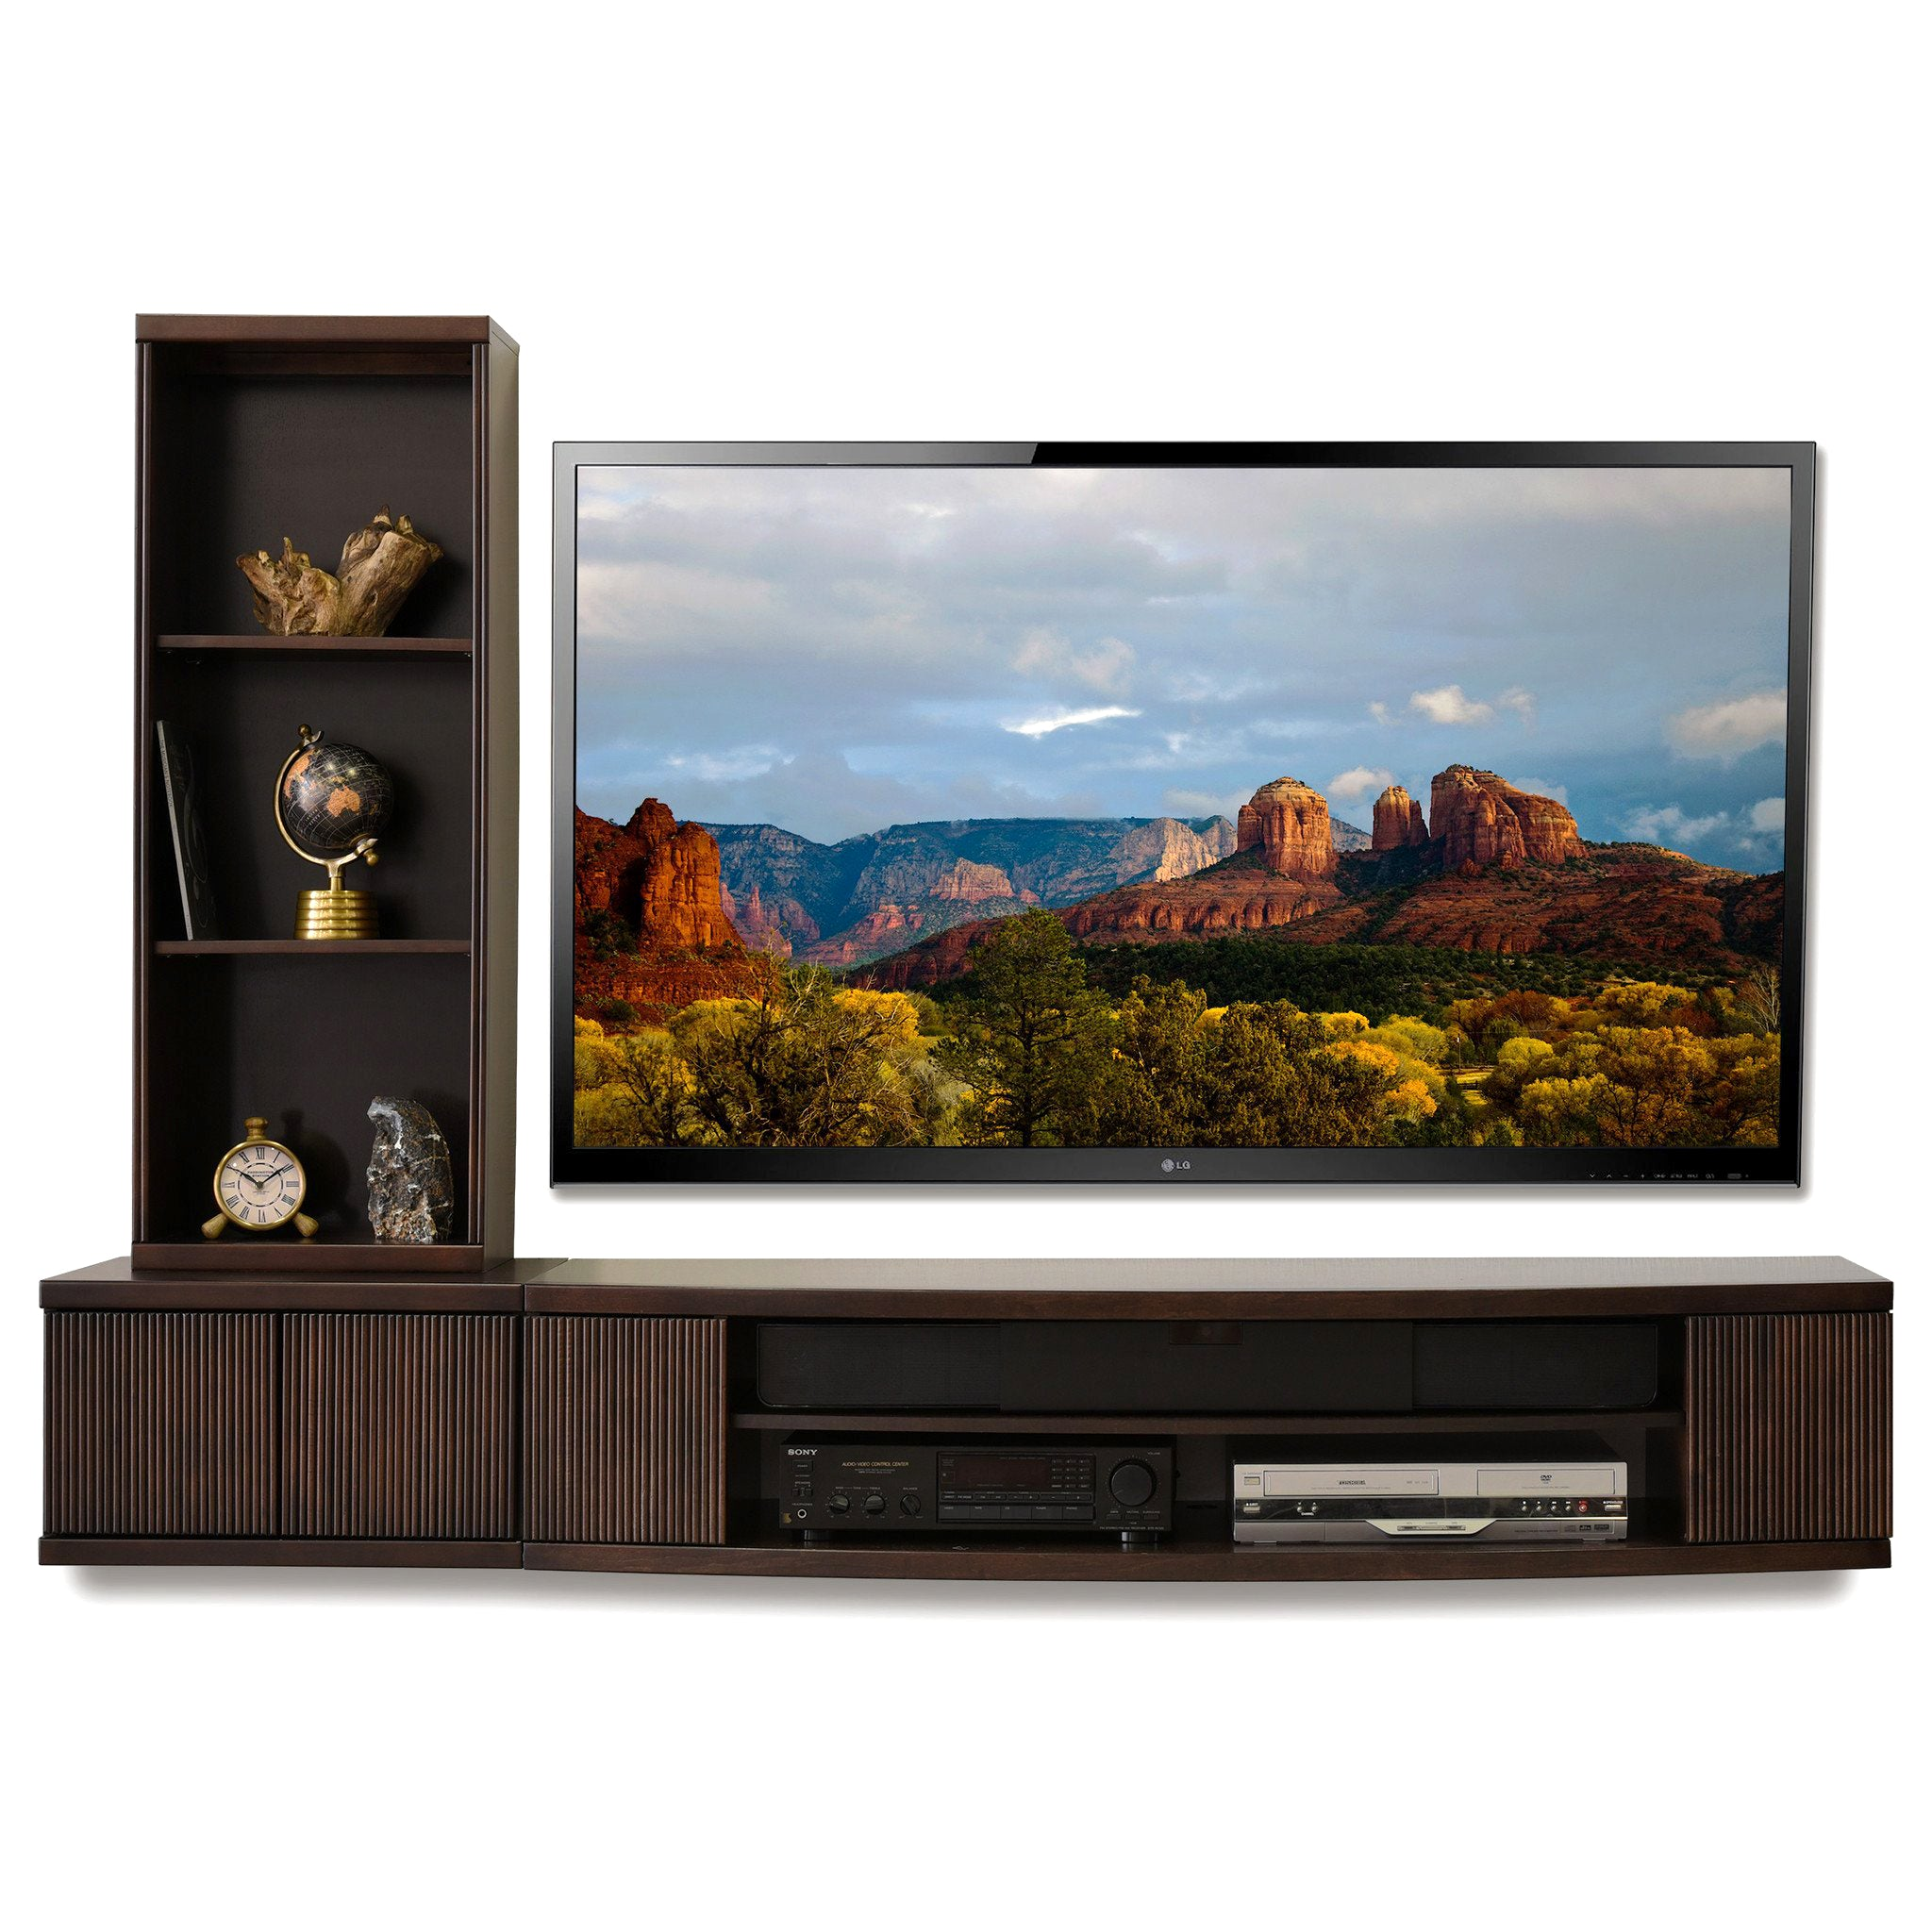 entertainment recessed tv showroom wood fireplace affordable bookcase room overlay shaker great custom knotty ins tops panel full bookcases cabinets wide center square built medium mantel hickory corbels frame open style and above thumb color